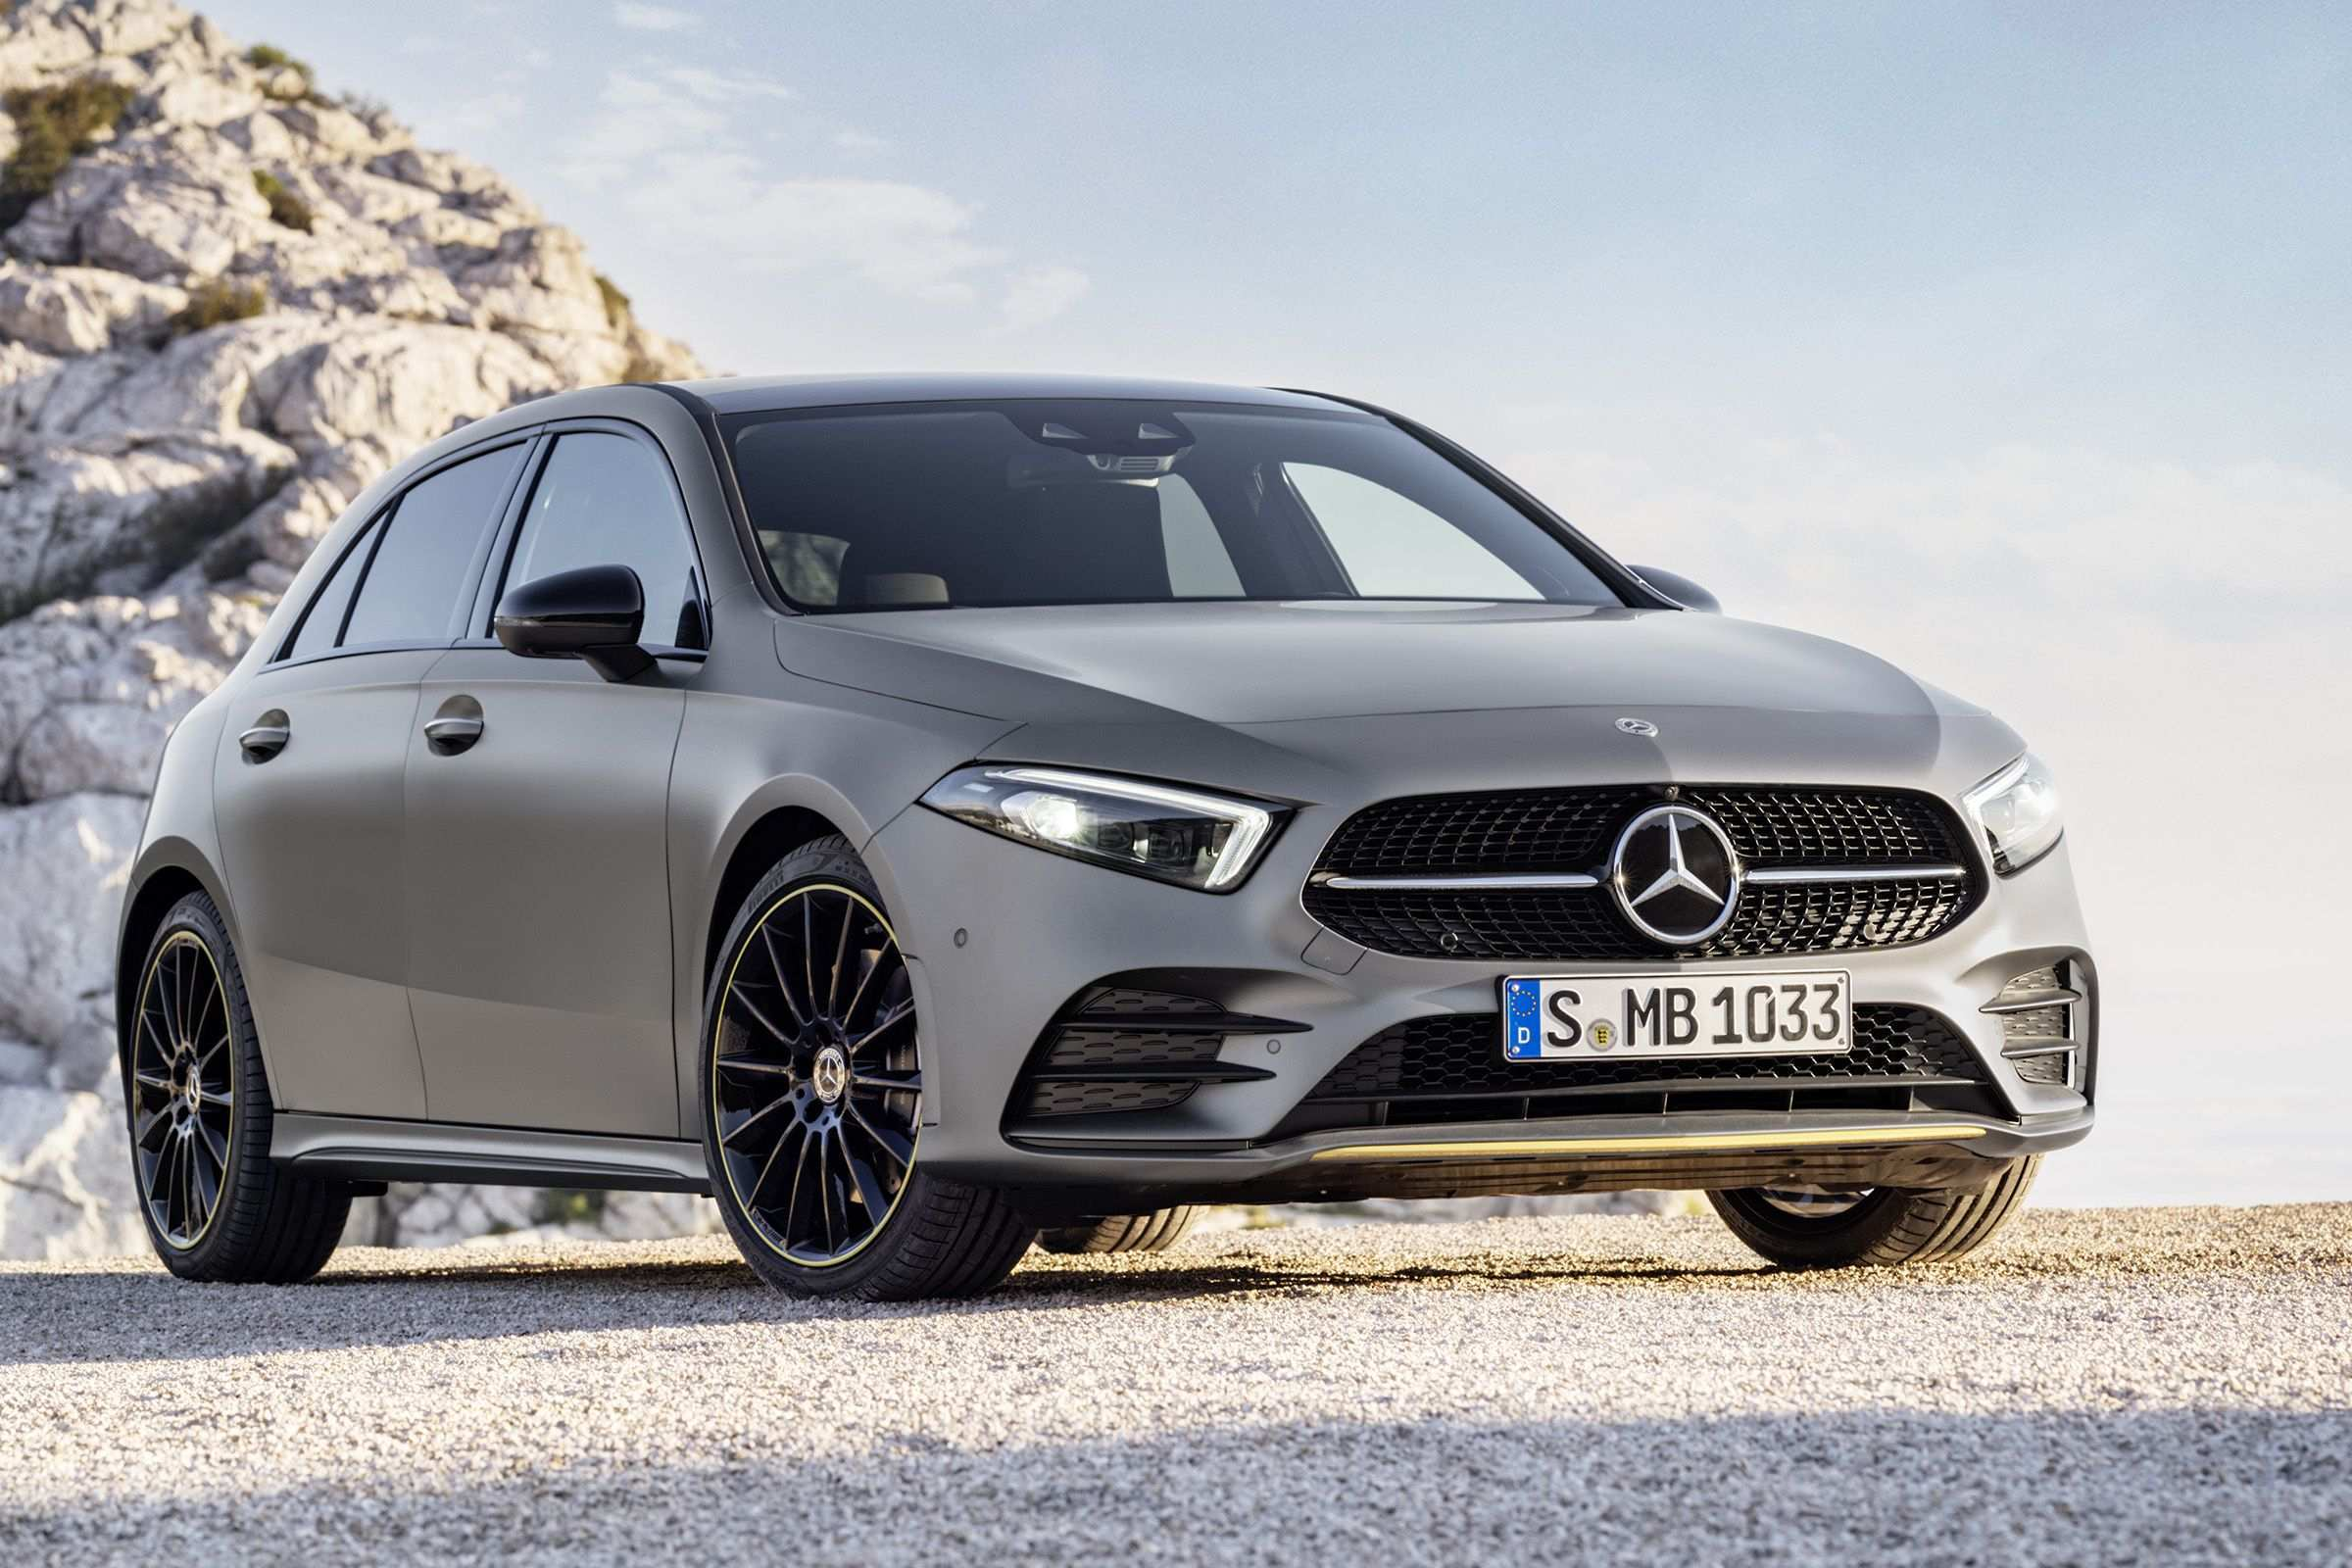 94 Best Review Best Mercedes 2019 Precio Concept Redesign And Review Research New with Best Mercedes 2019 Precio Concept Redesign And Review